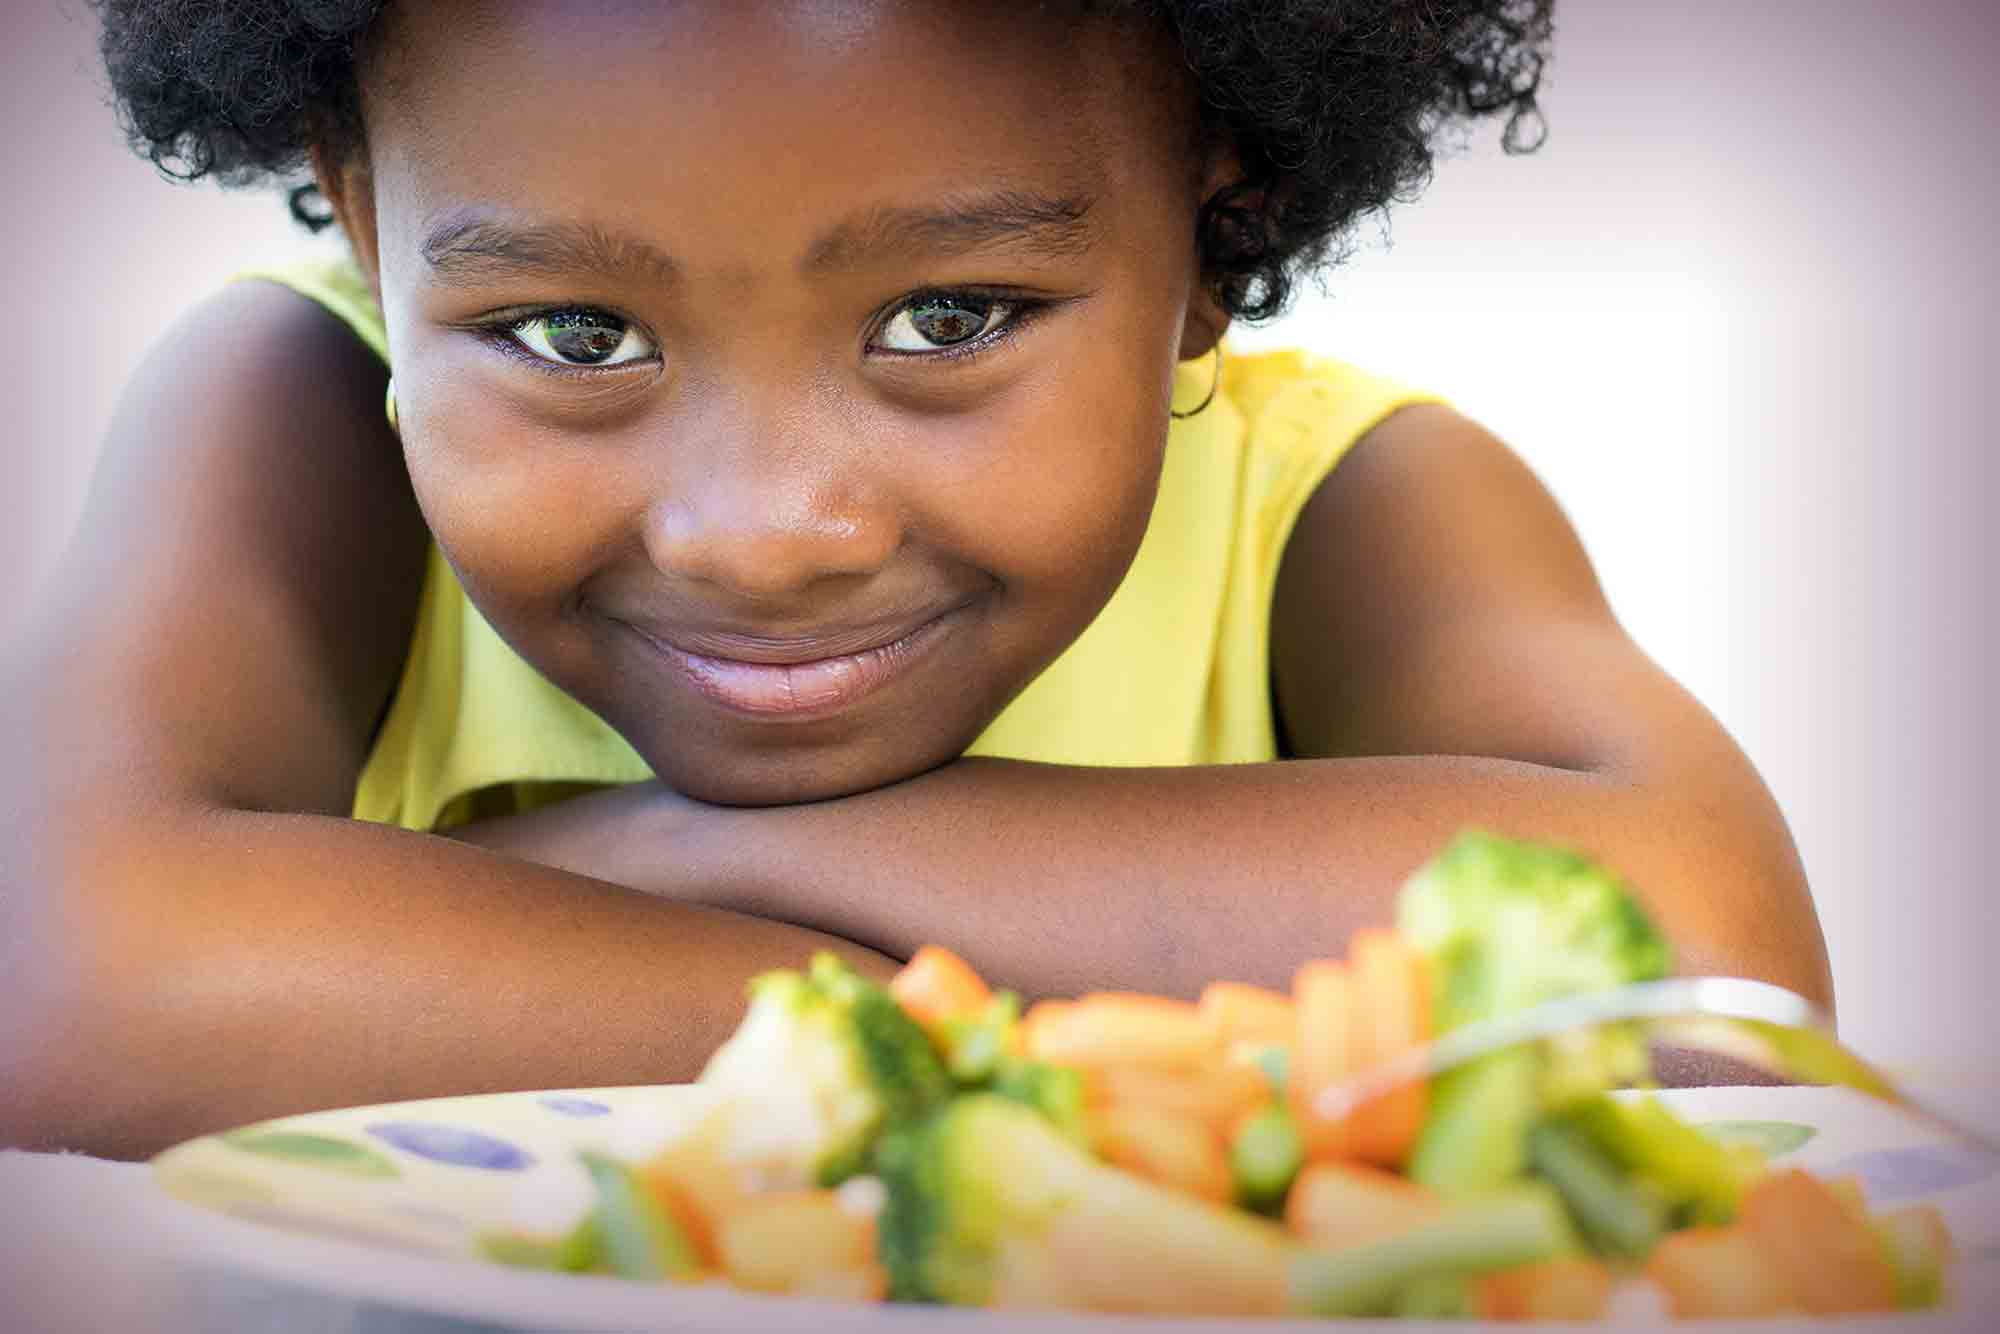 Premier Medical Group - Easy ways to add fiber to your child's diet.